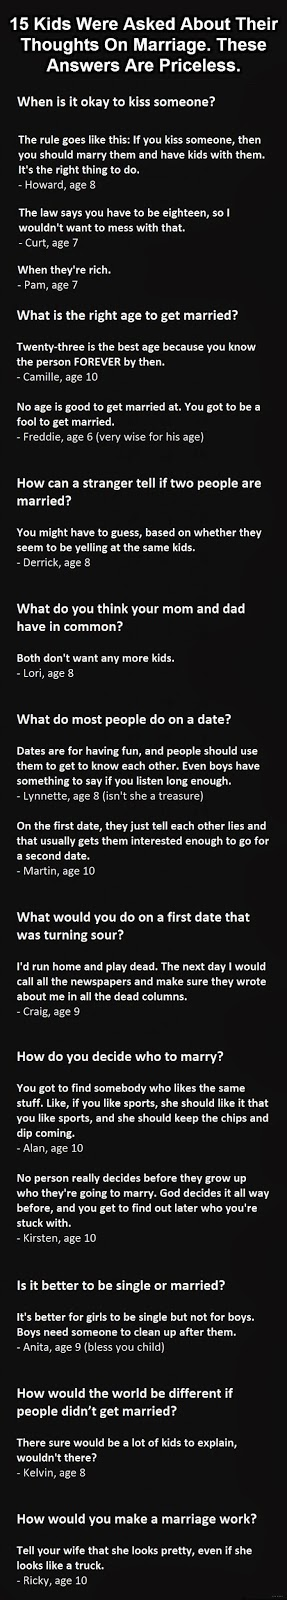 These 15 Kids Were Asked About Their Thoughts On Marriage And The Answers Are Priceless